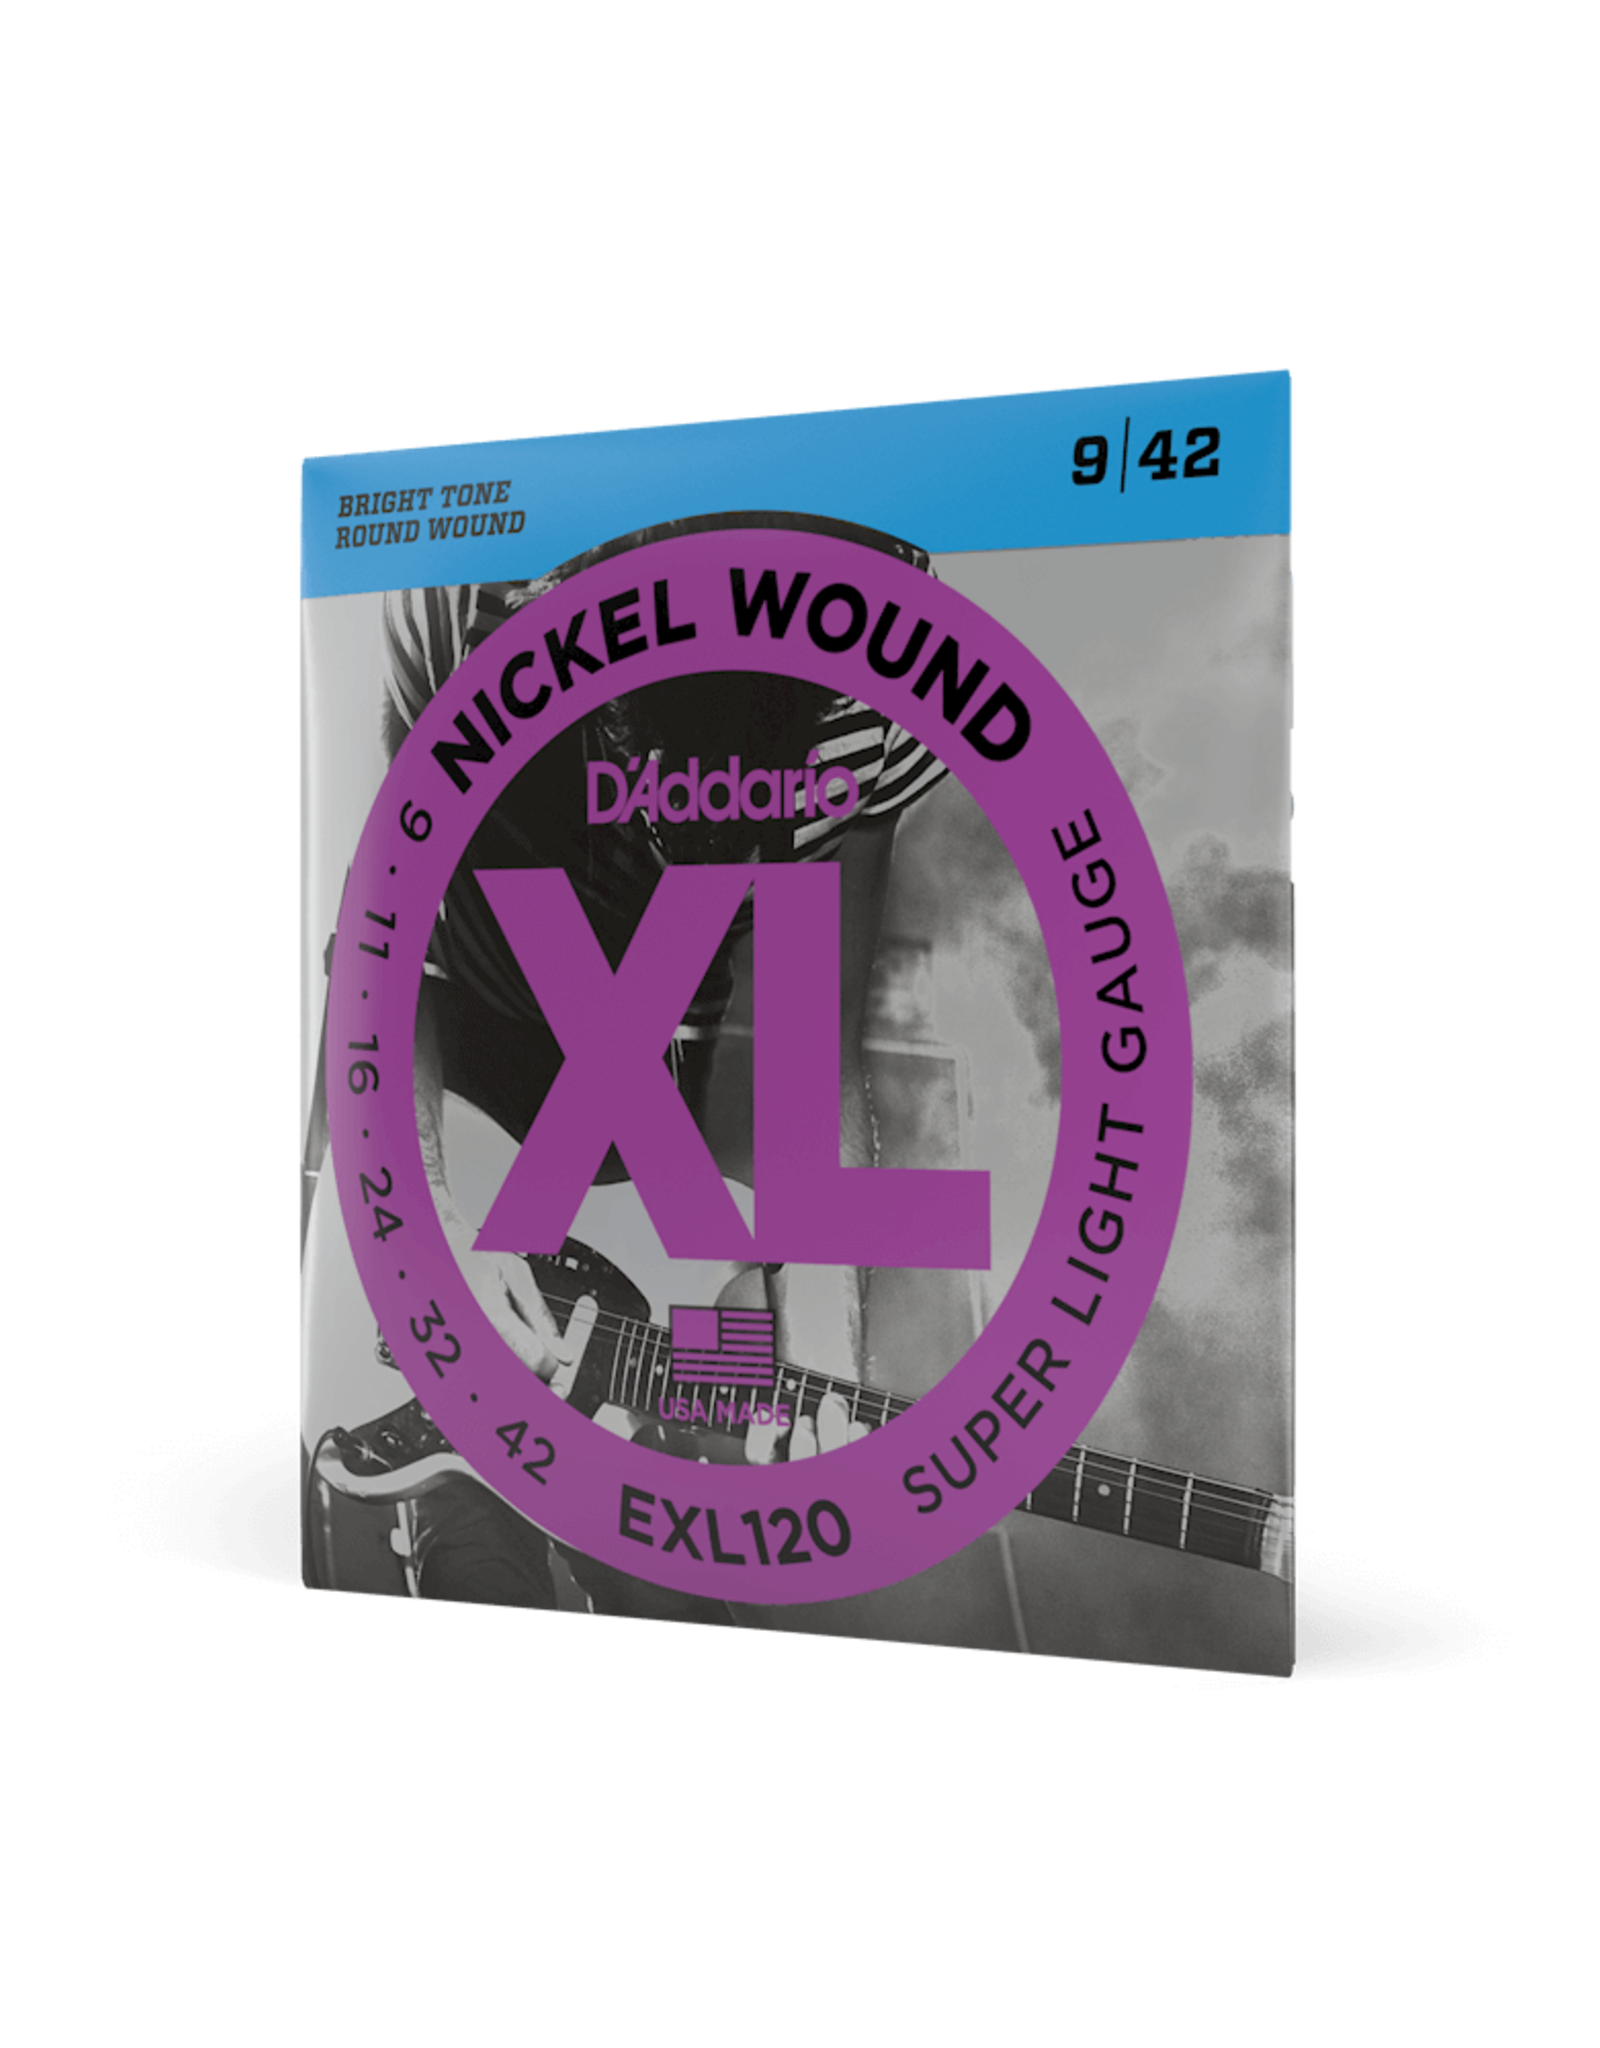 D'Addario D'Addario EXL120 Nickel Wound Electric Guitar Strings, Super-Light, 09-42